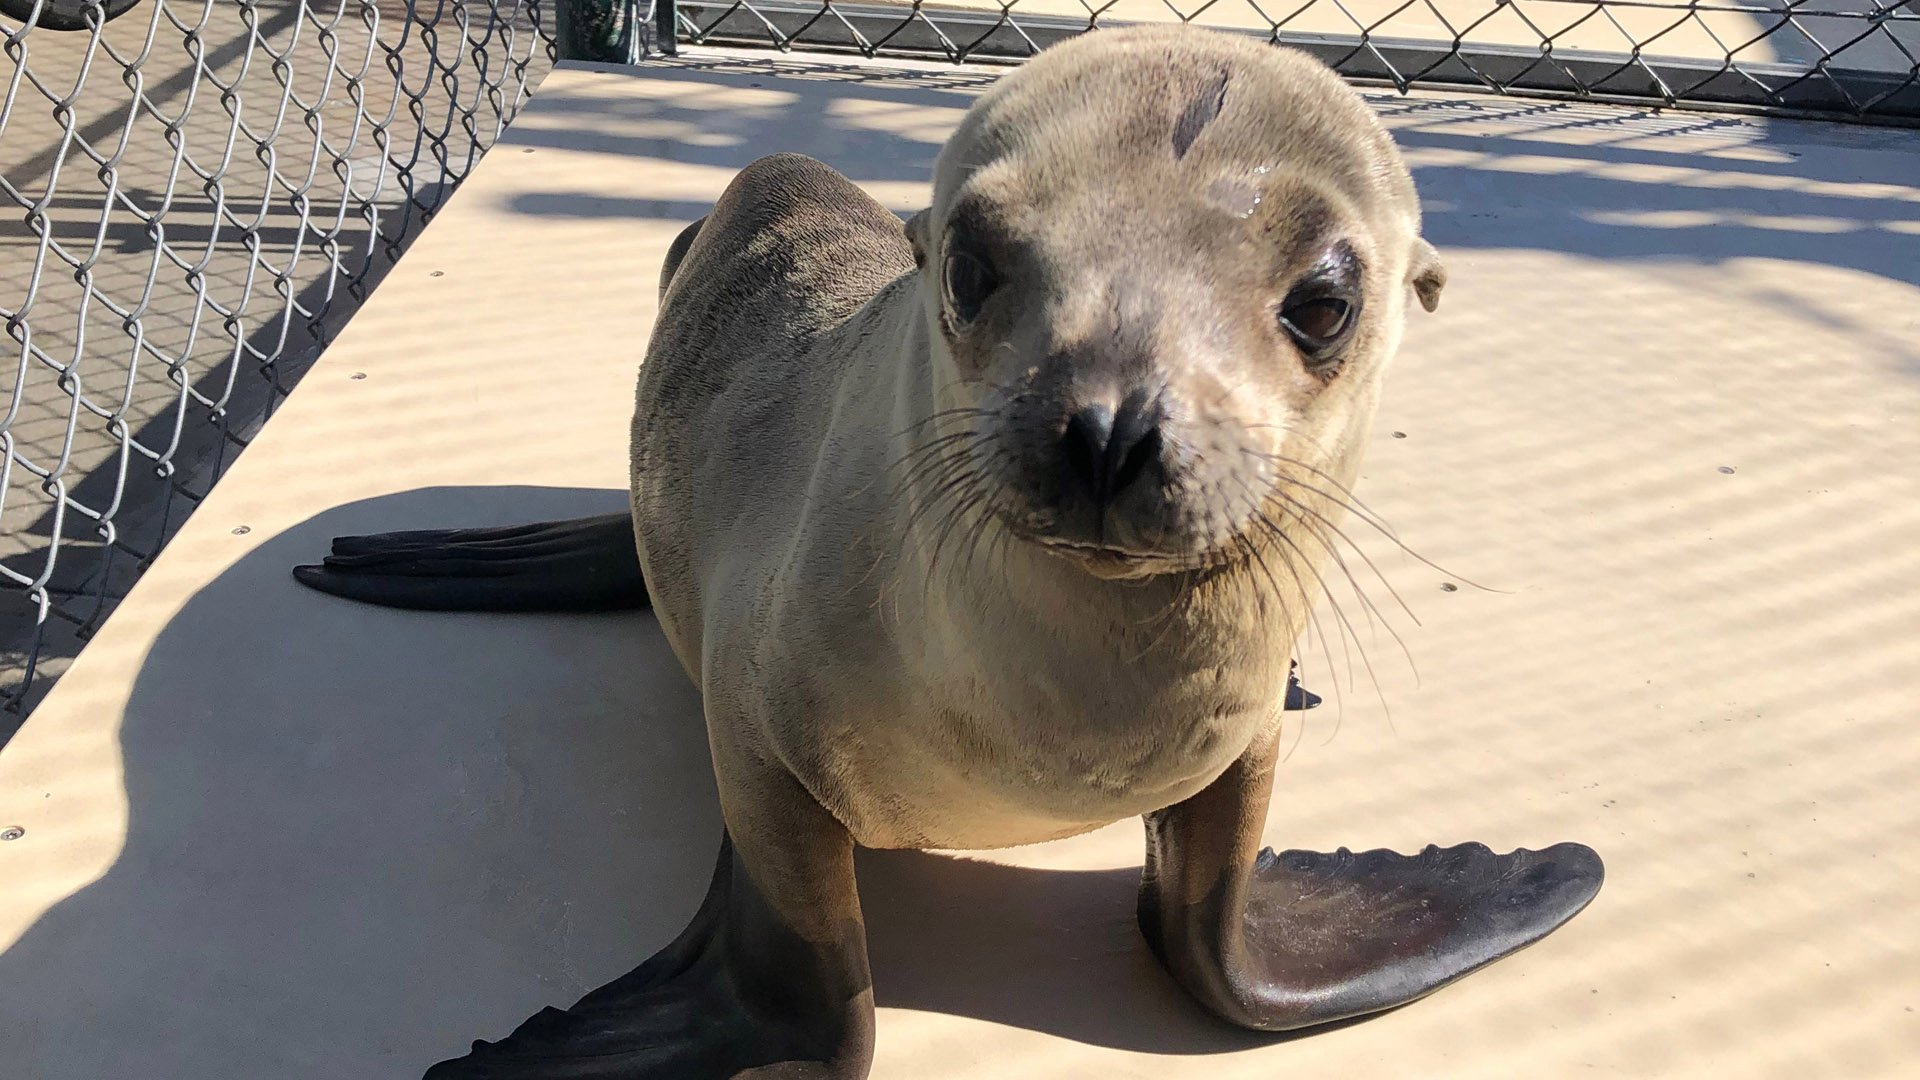 A sea lion pup recovers at the Marine Mammal Care Center in San Pedro after being rescued from the 710 Freeway in Long Beach. (Credit: Marine Mammal Care Center)